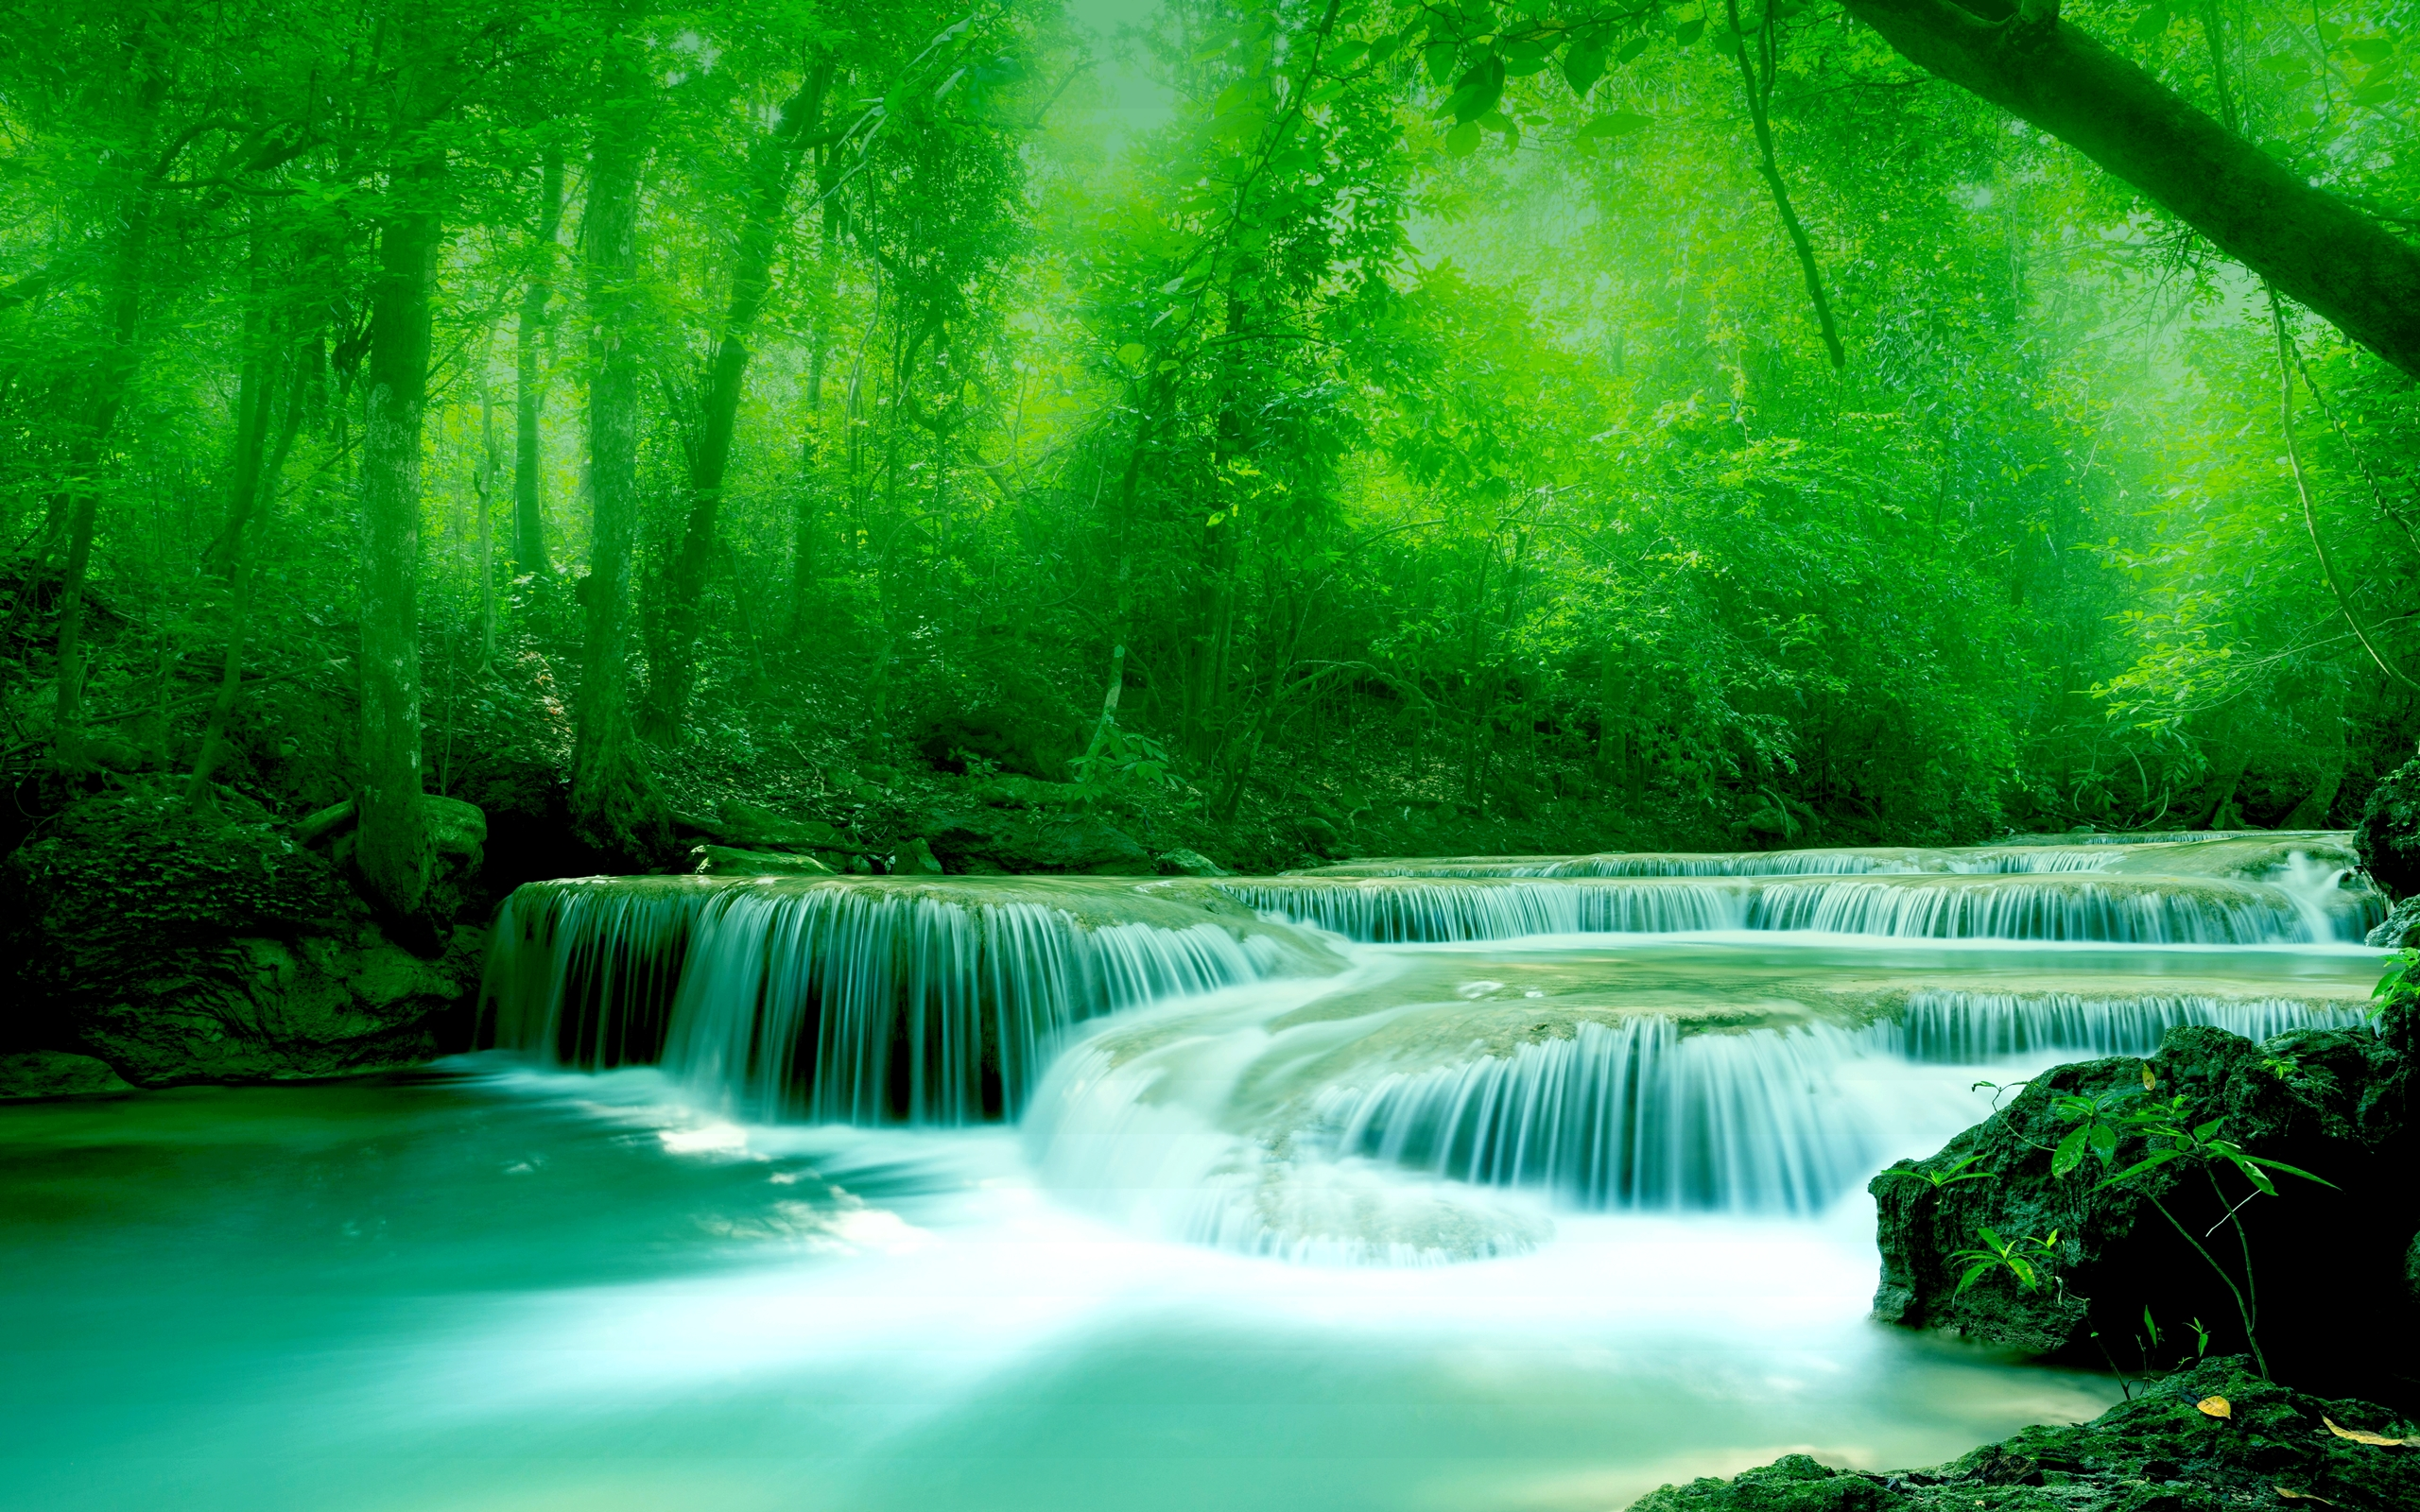 Wallpaper River Water Rocks Trees Greenery 2560x1600